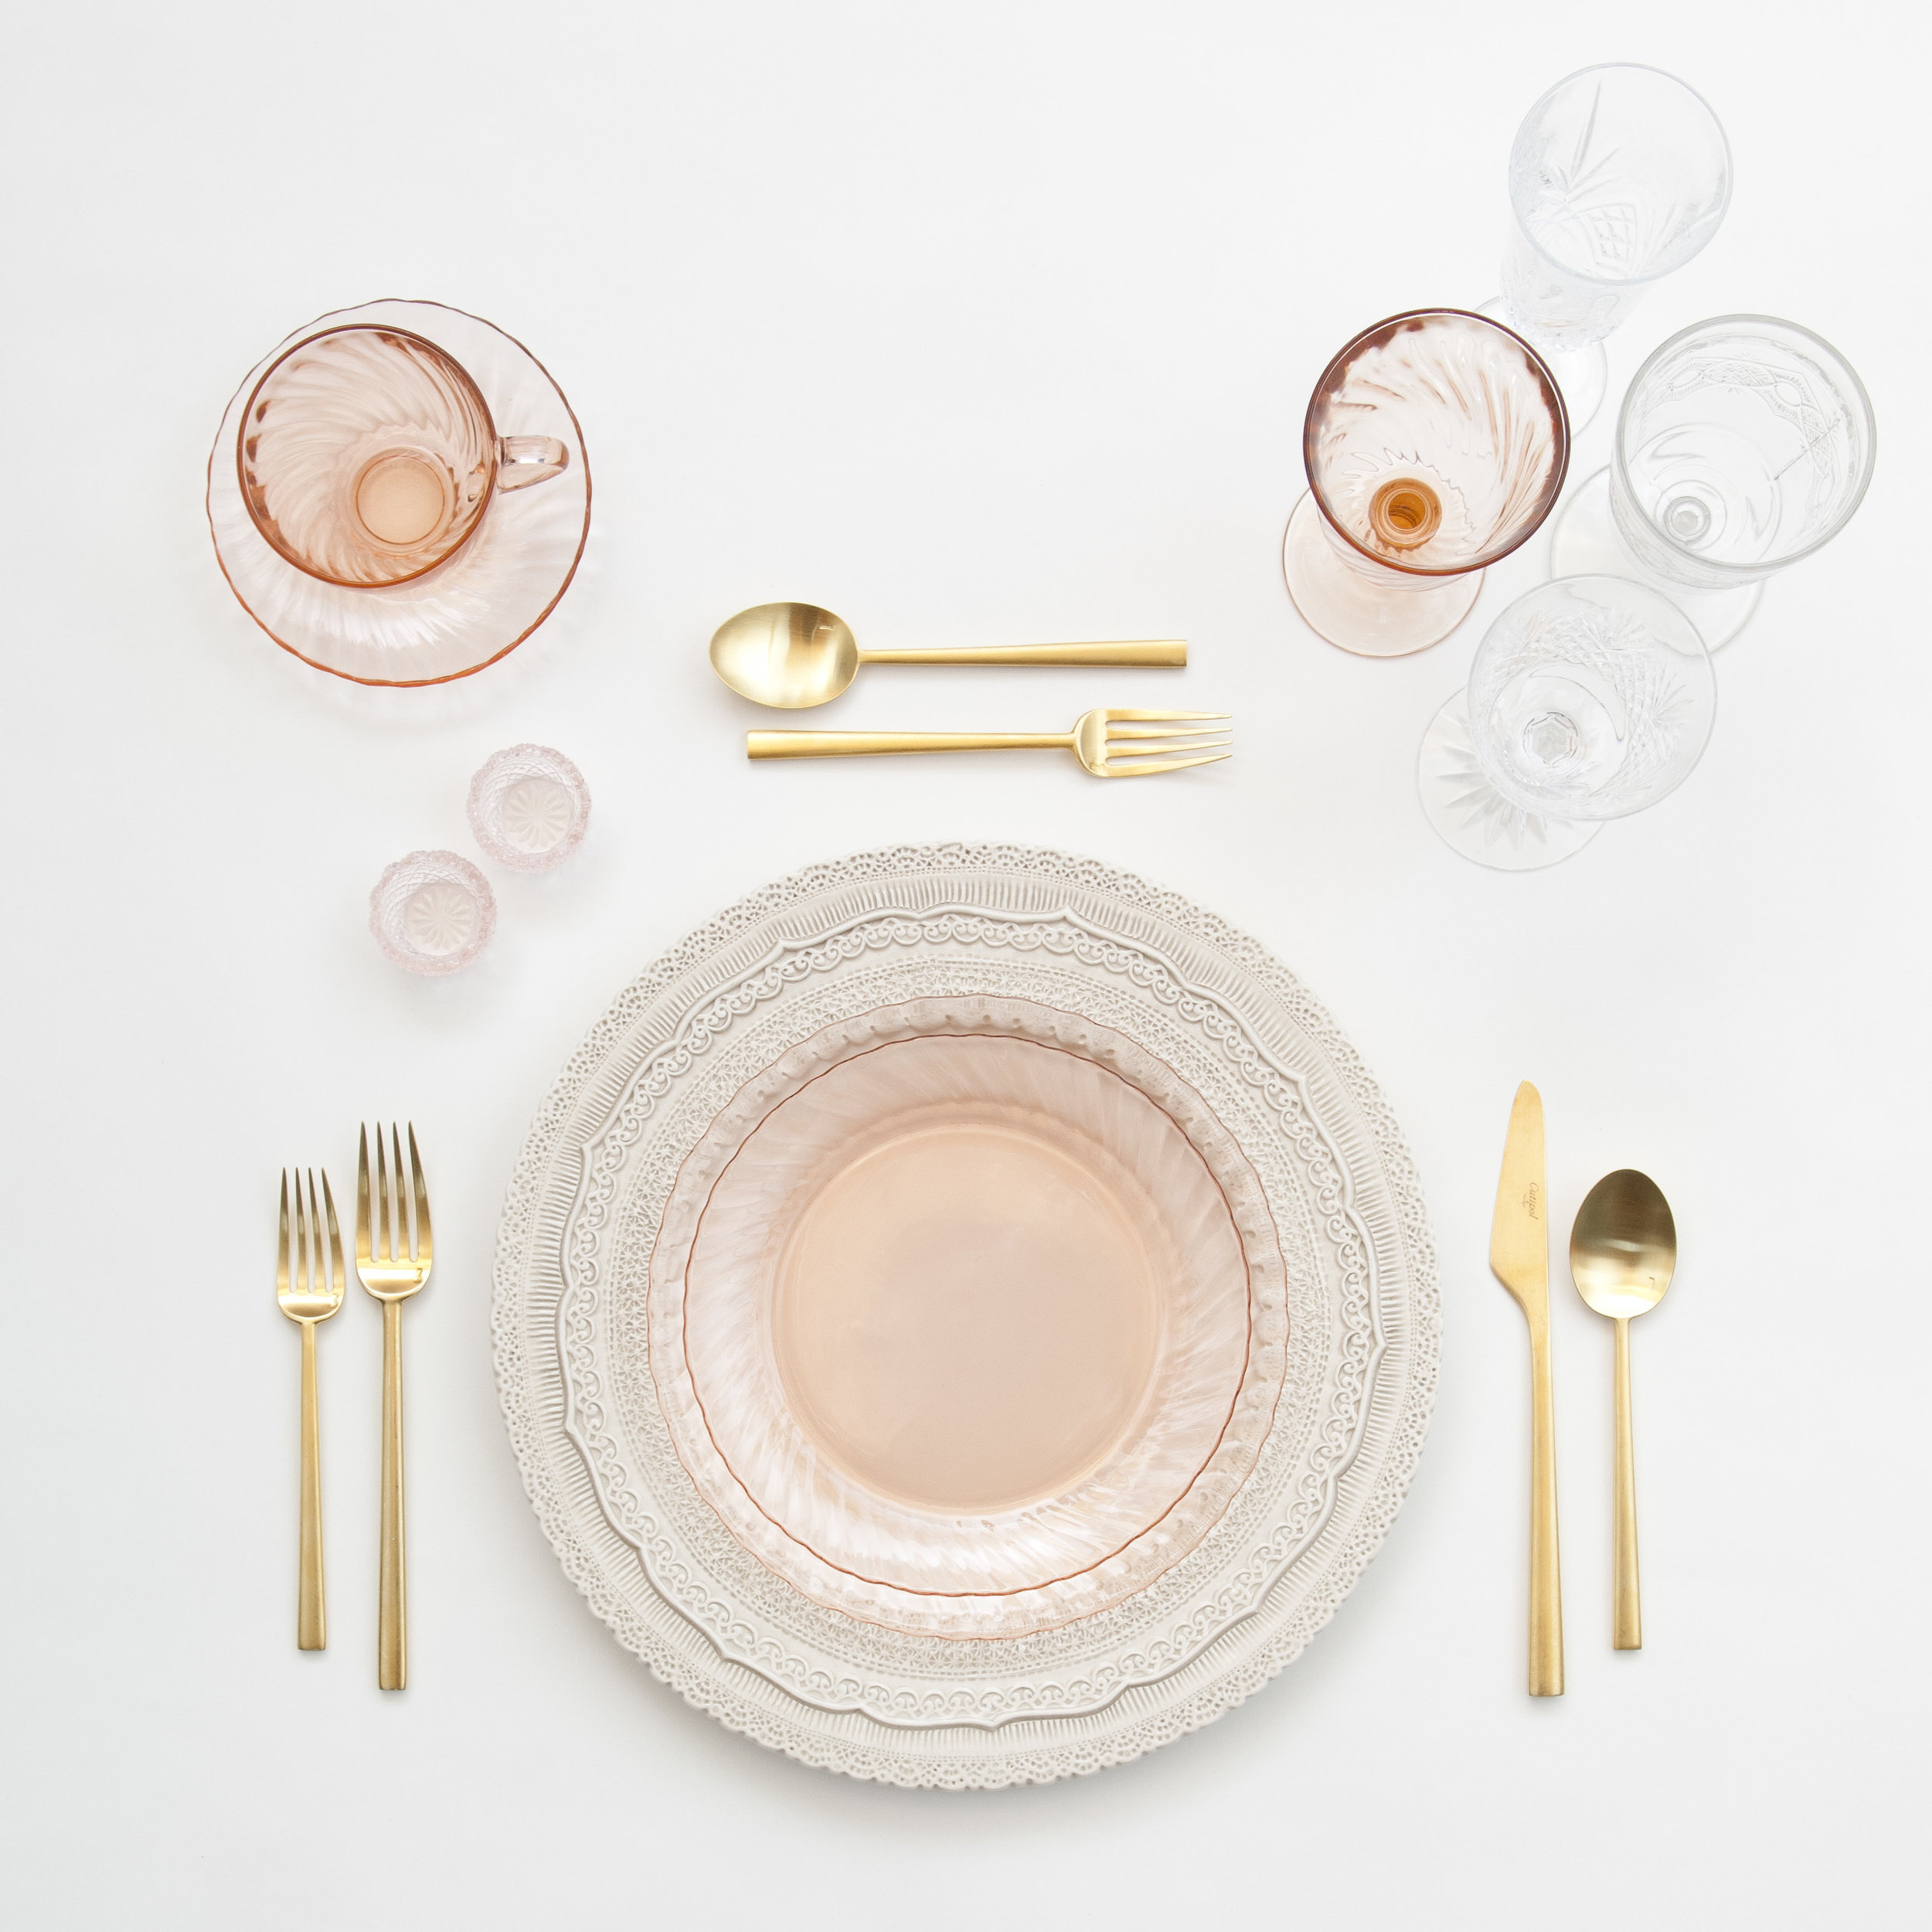 RENT: Lace Chargers in White + Pink Swirl Collection Plates + Rondo Flatware in Brushed 24k Gold + Vintage Pink Swirl Goblets + Vintage Champagne Flutes + Early American Pressed Glass Goblets + Vintage Cut Crystal Goblets + Pink Crystal Salt Cellars  SHOP: Rondo Flatware in Brushed 24k Gold